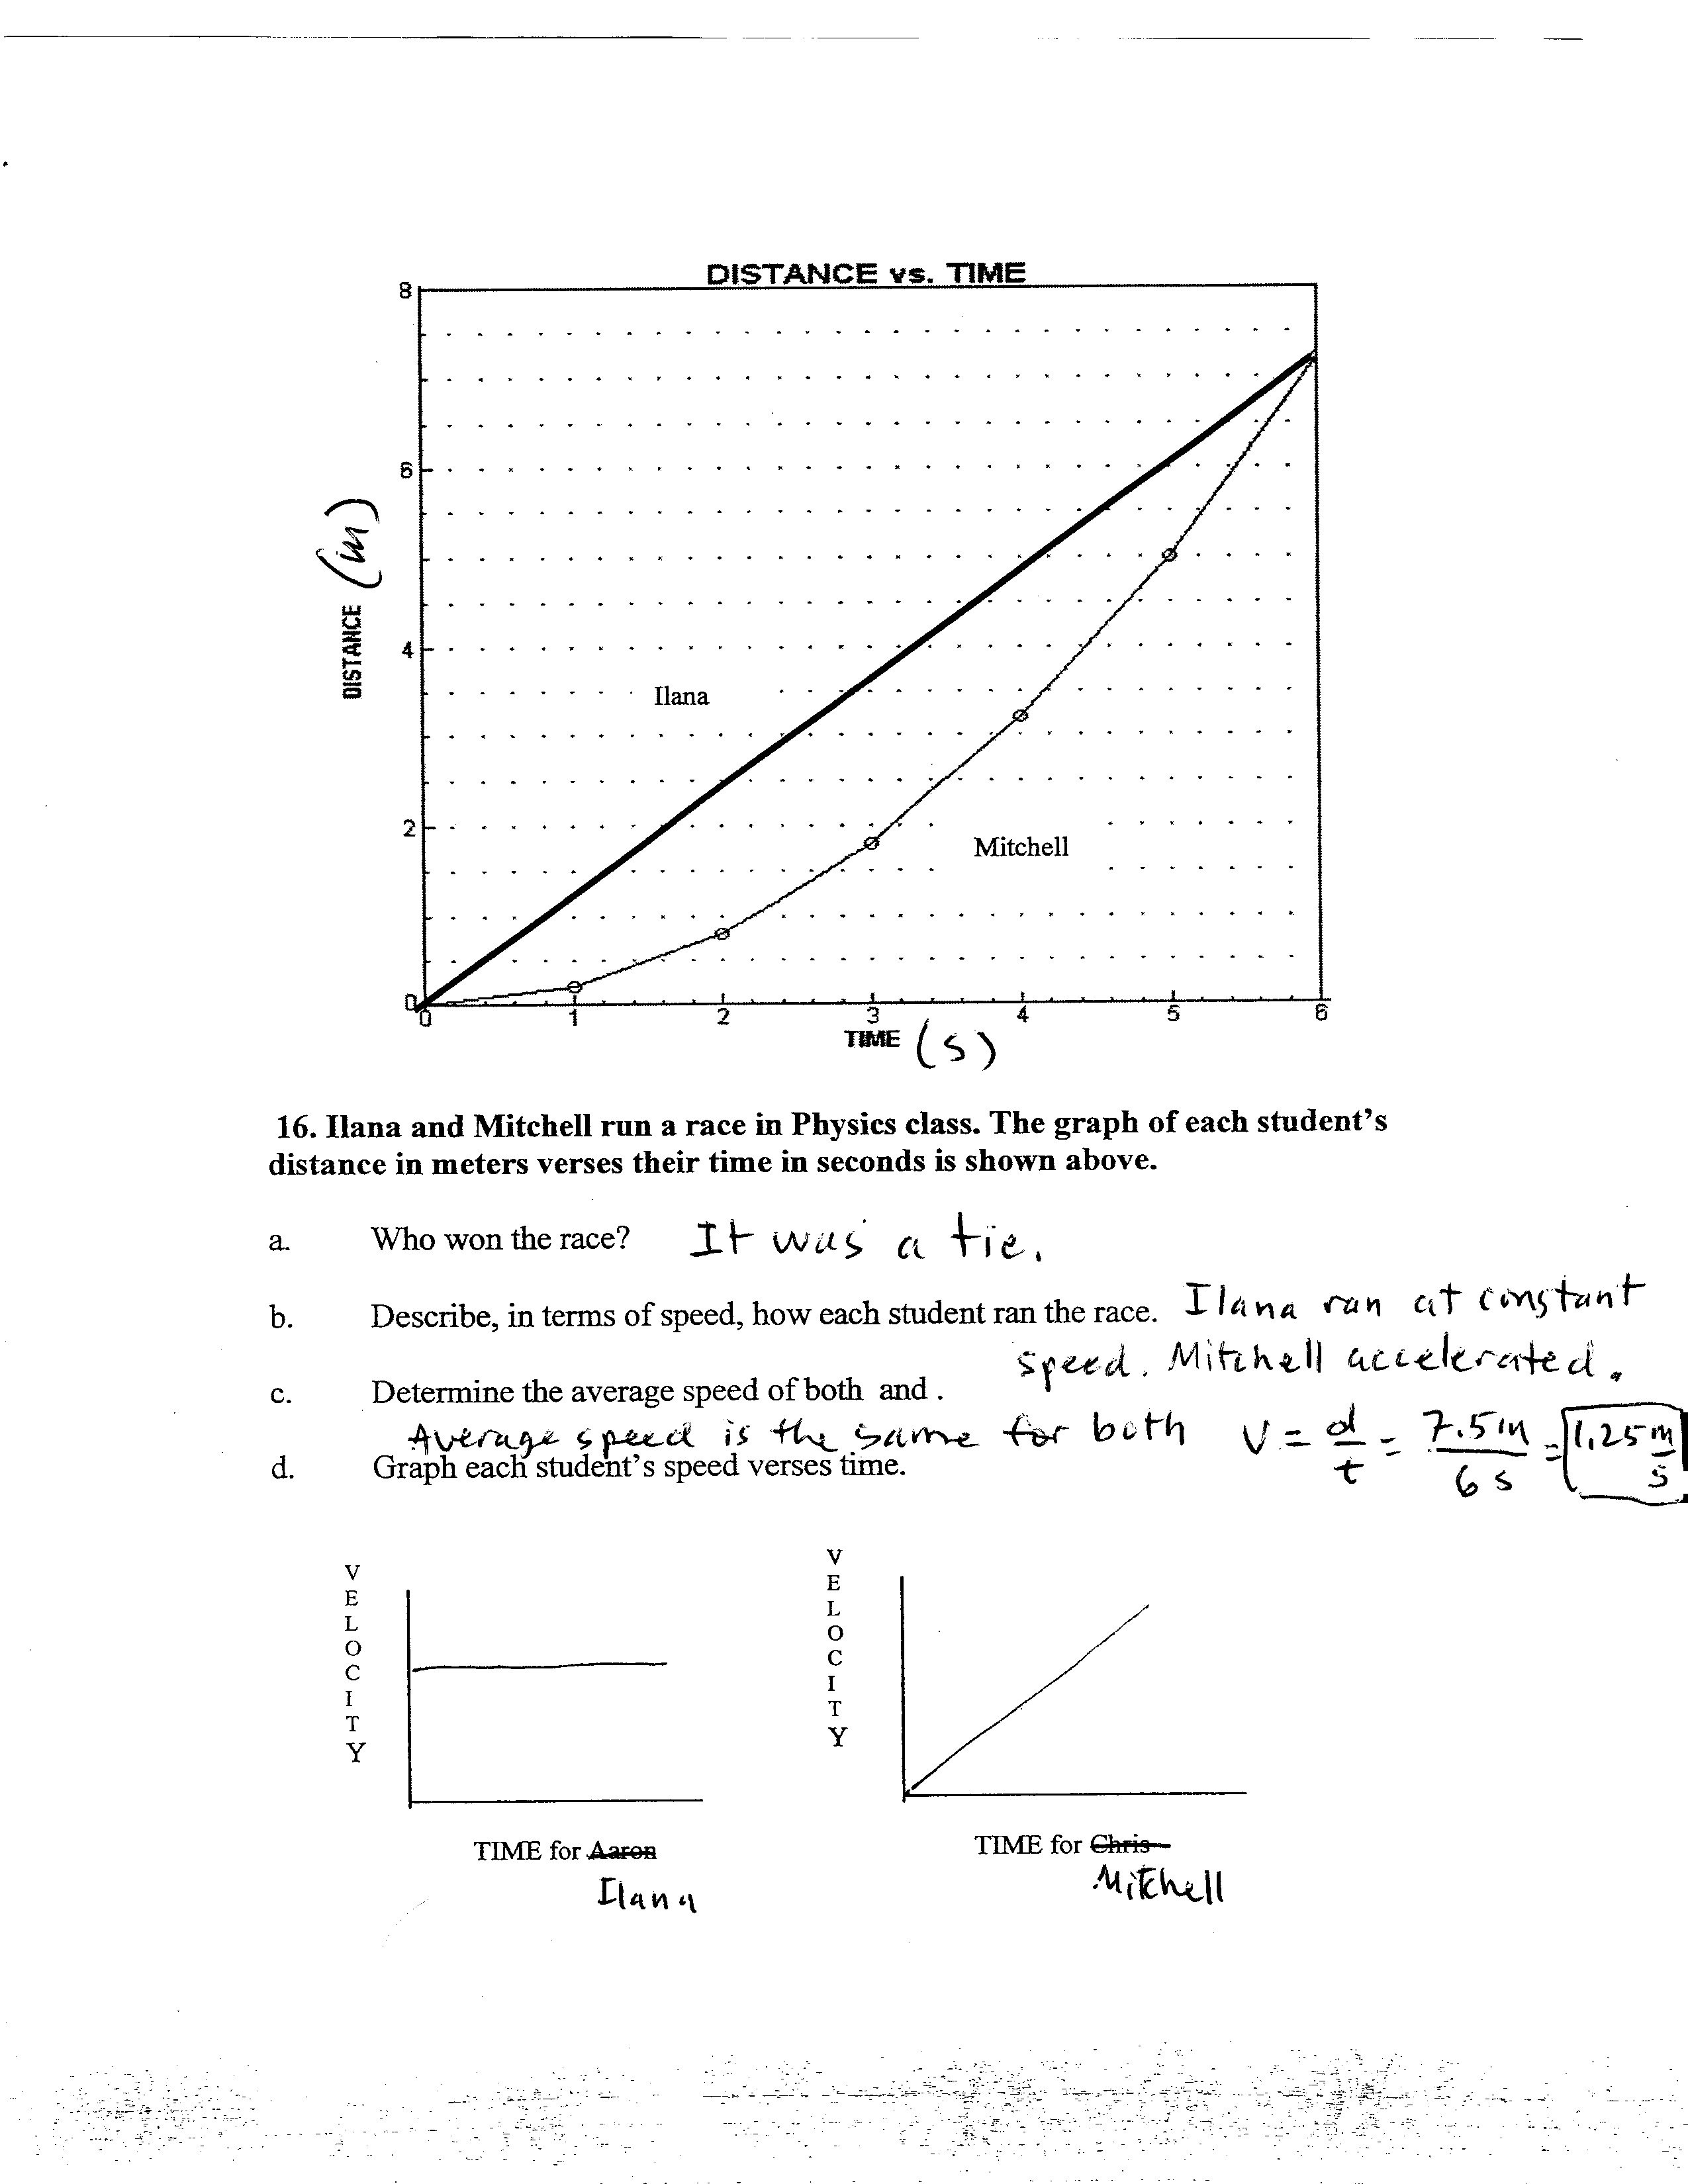 worksheet Graphing Distance Vs Time Worksheet Answers accelerated homework week of september 26